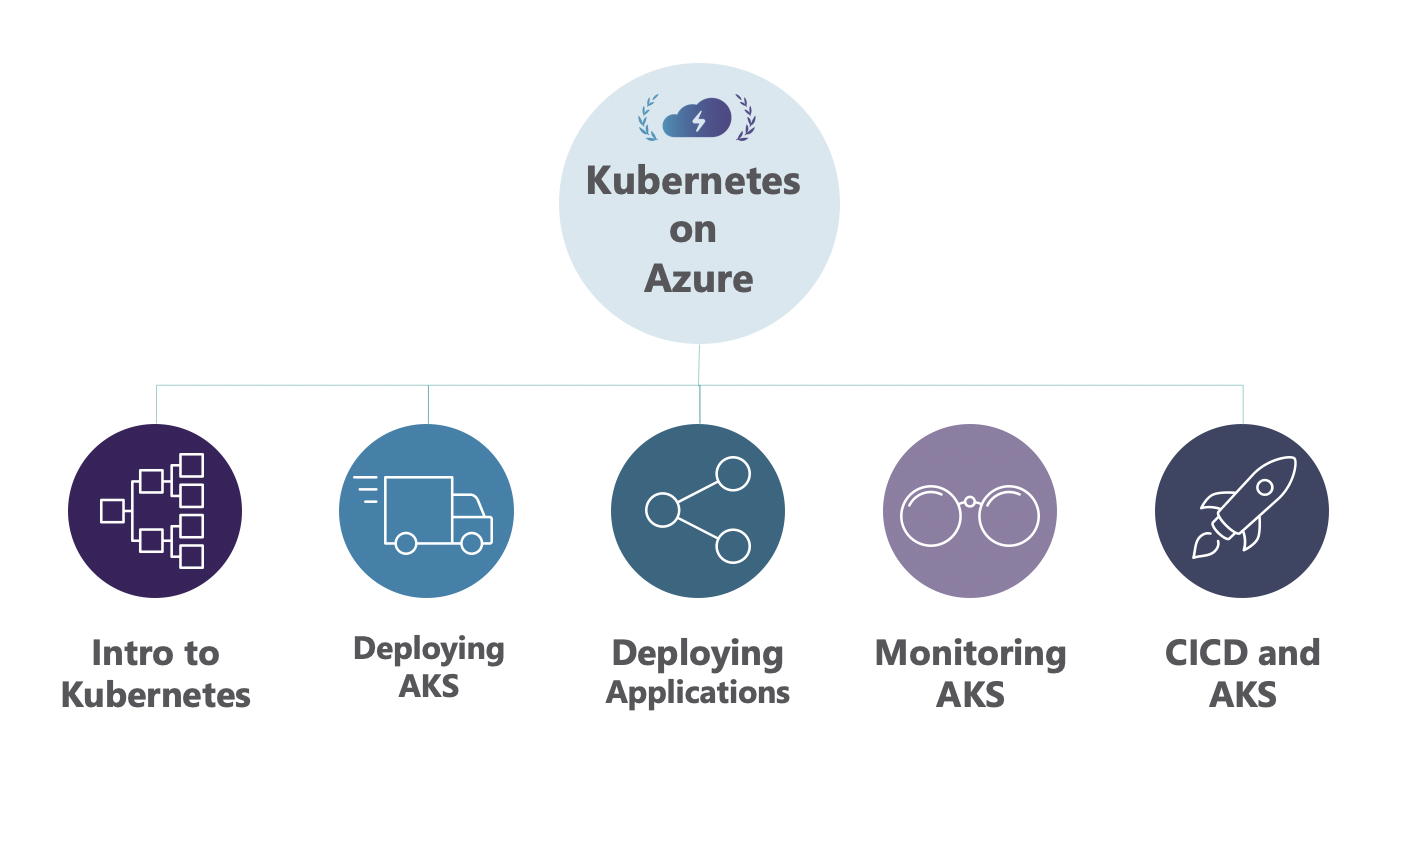 Kubernetes on Azure Overview